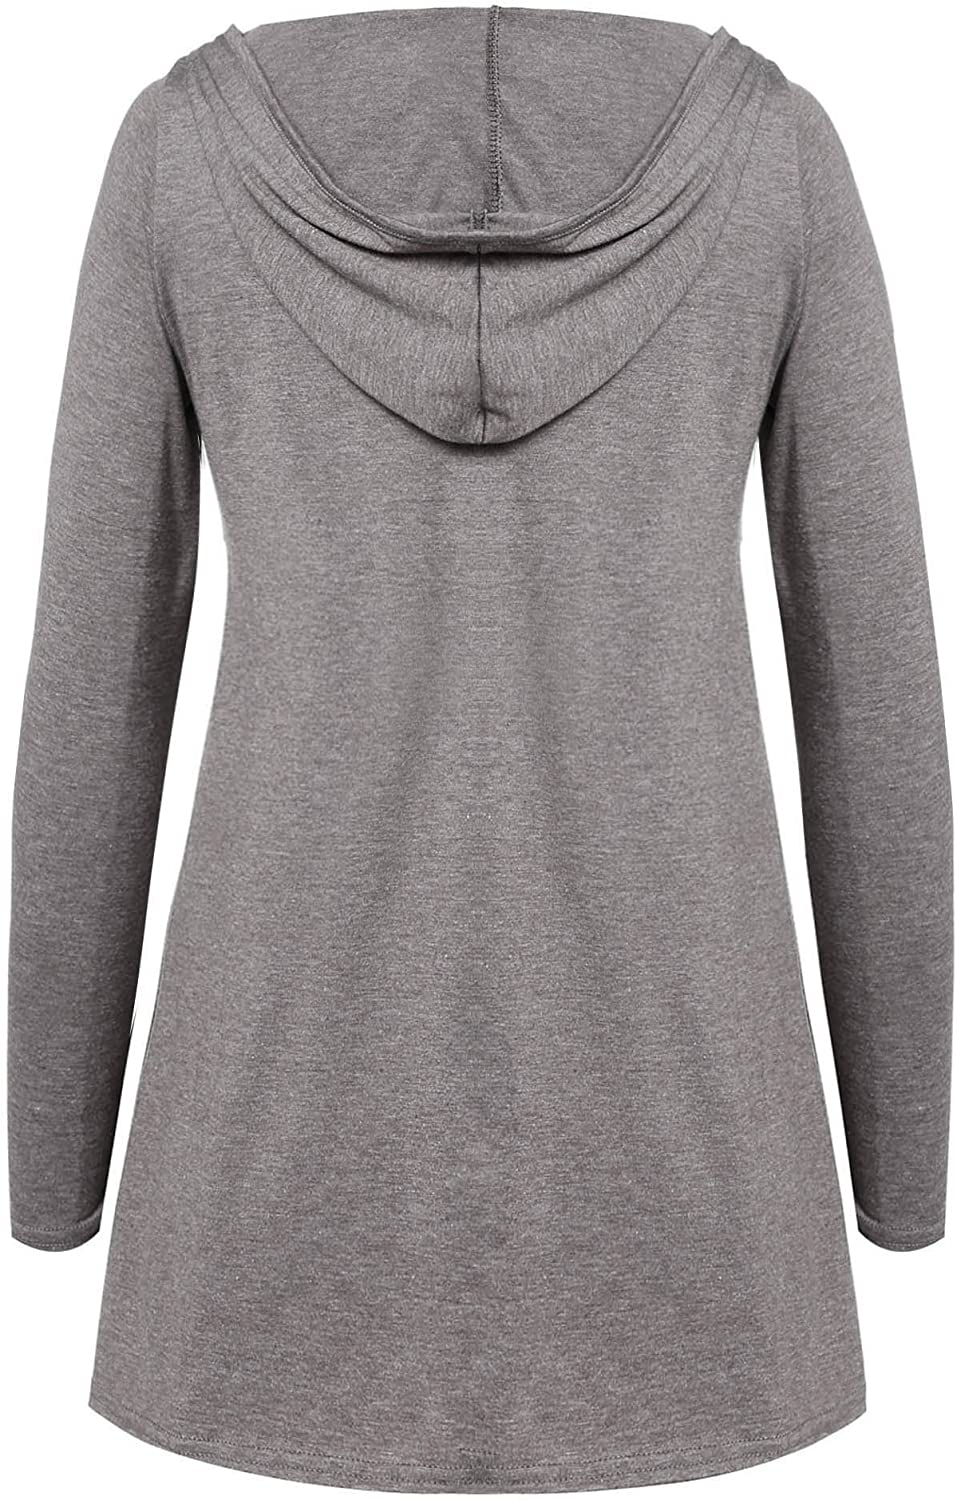 Zeagoo Tunic Tops Womens Long Sleeve Loose Fit Deep V Neck Lace Up Hoodie with Adjustable Drawstring